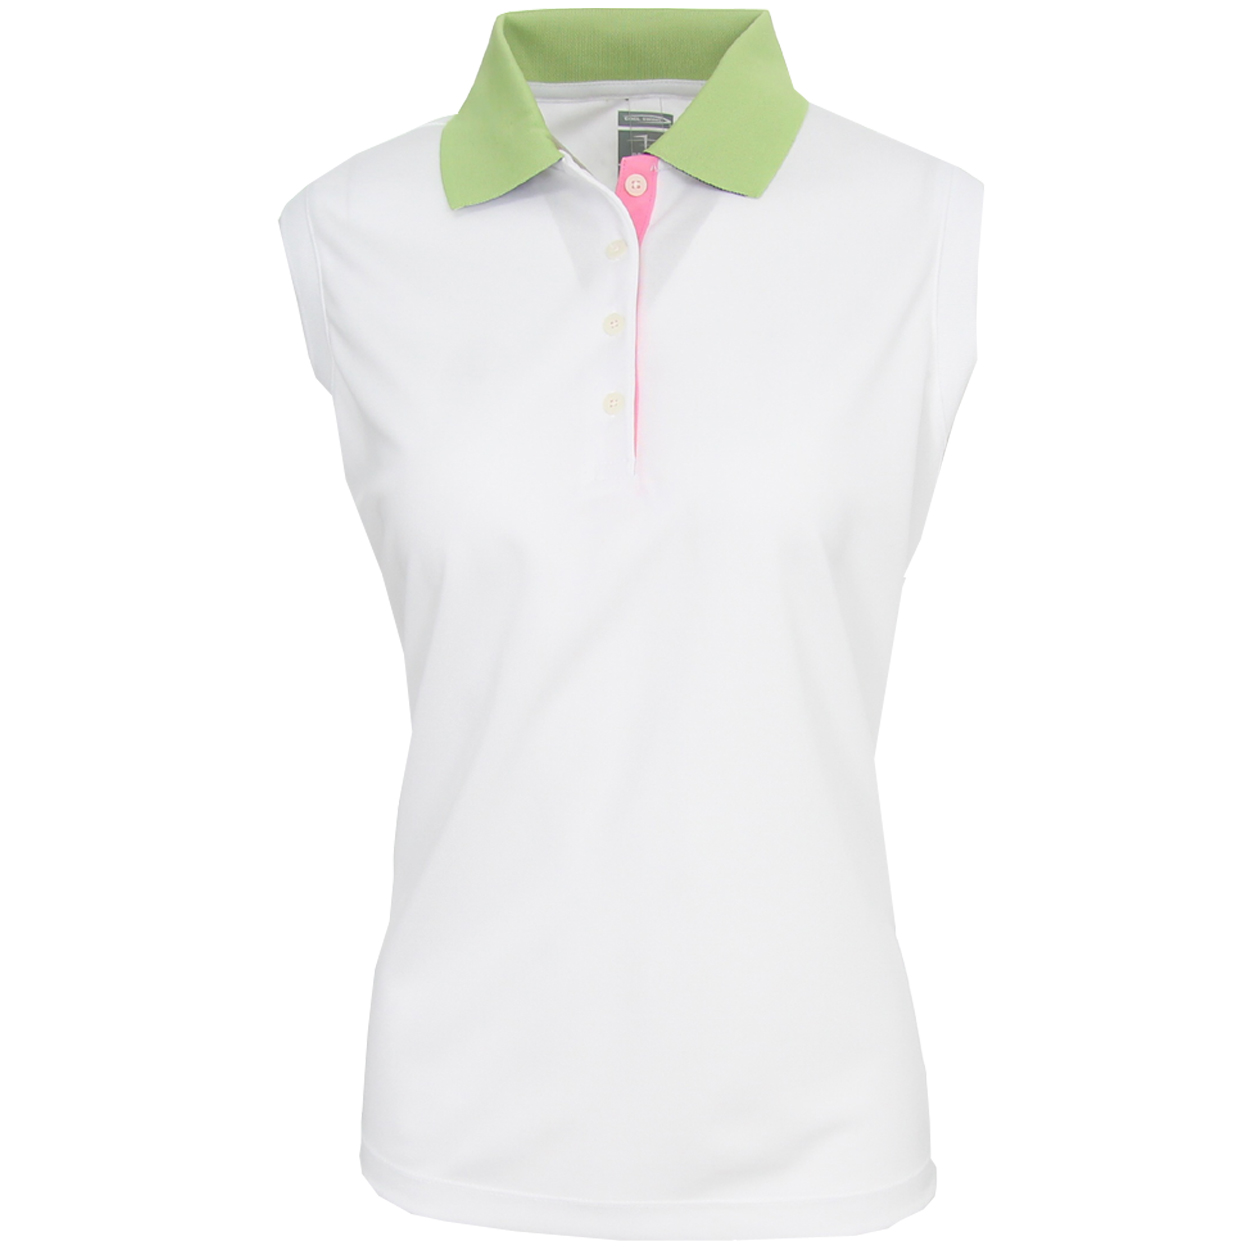 Page Tuttle Women 39 S Sleeveless Cool Swing Golf Shirt Brand